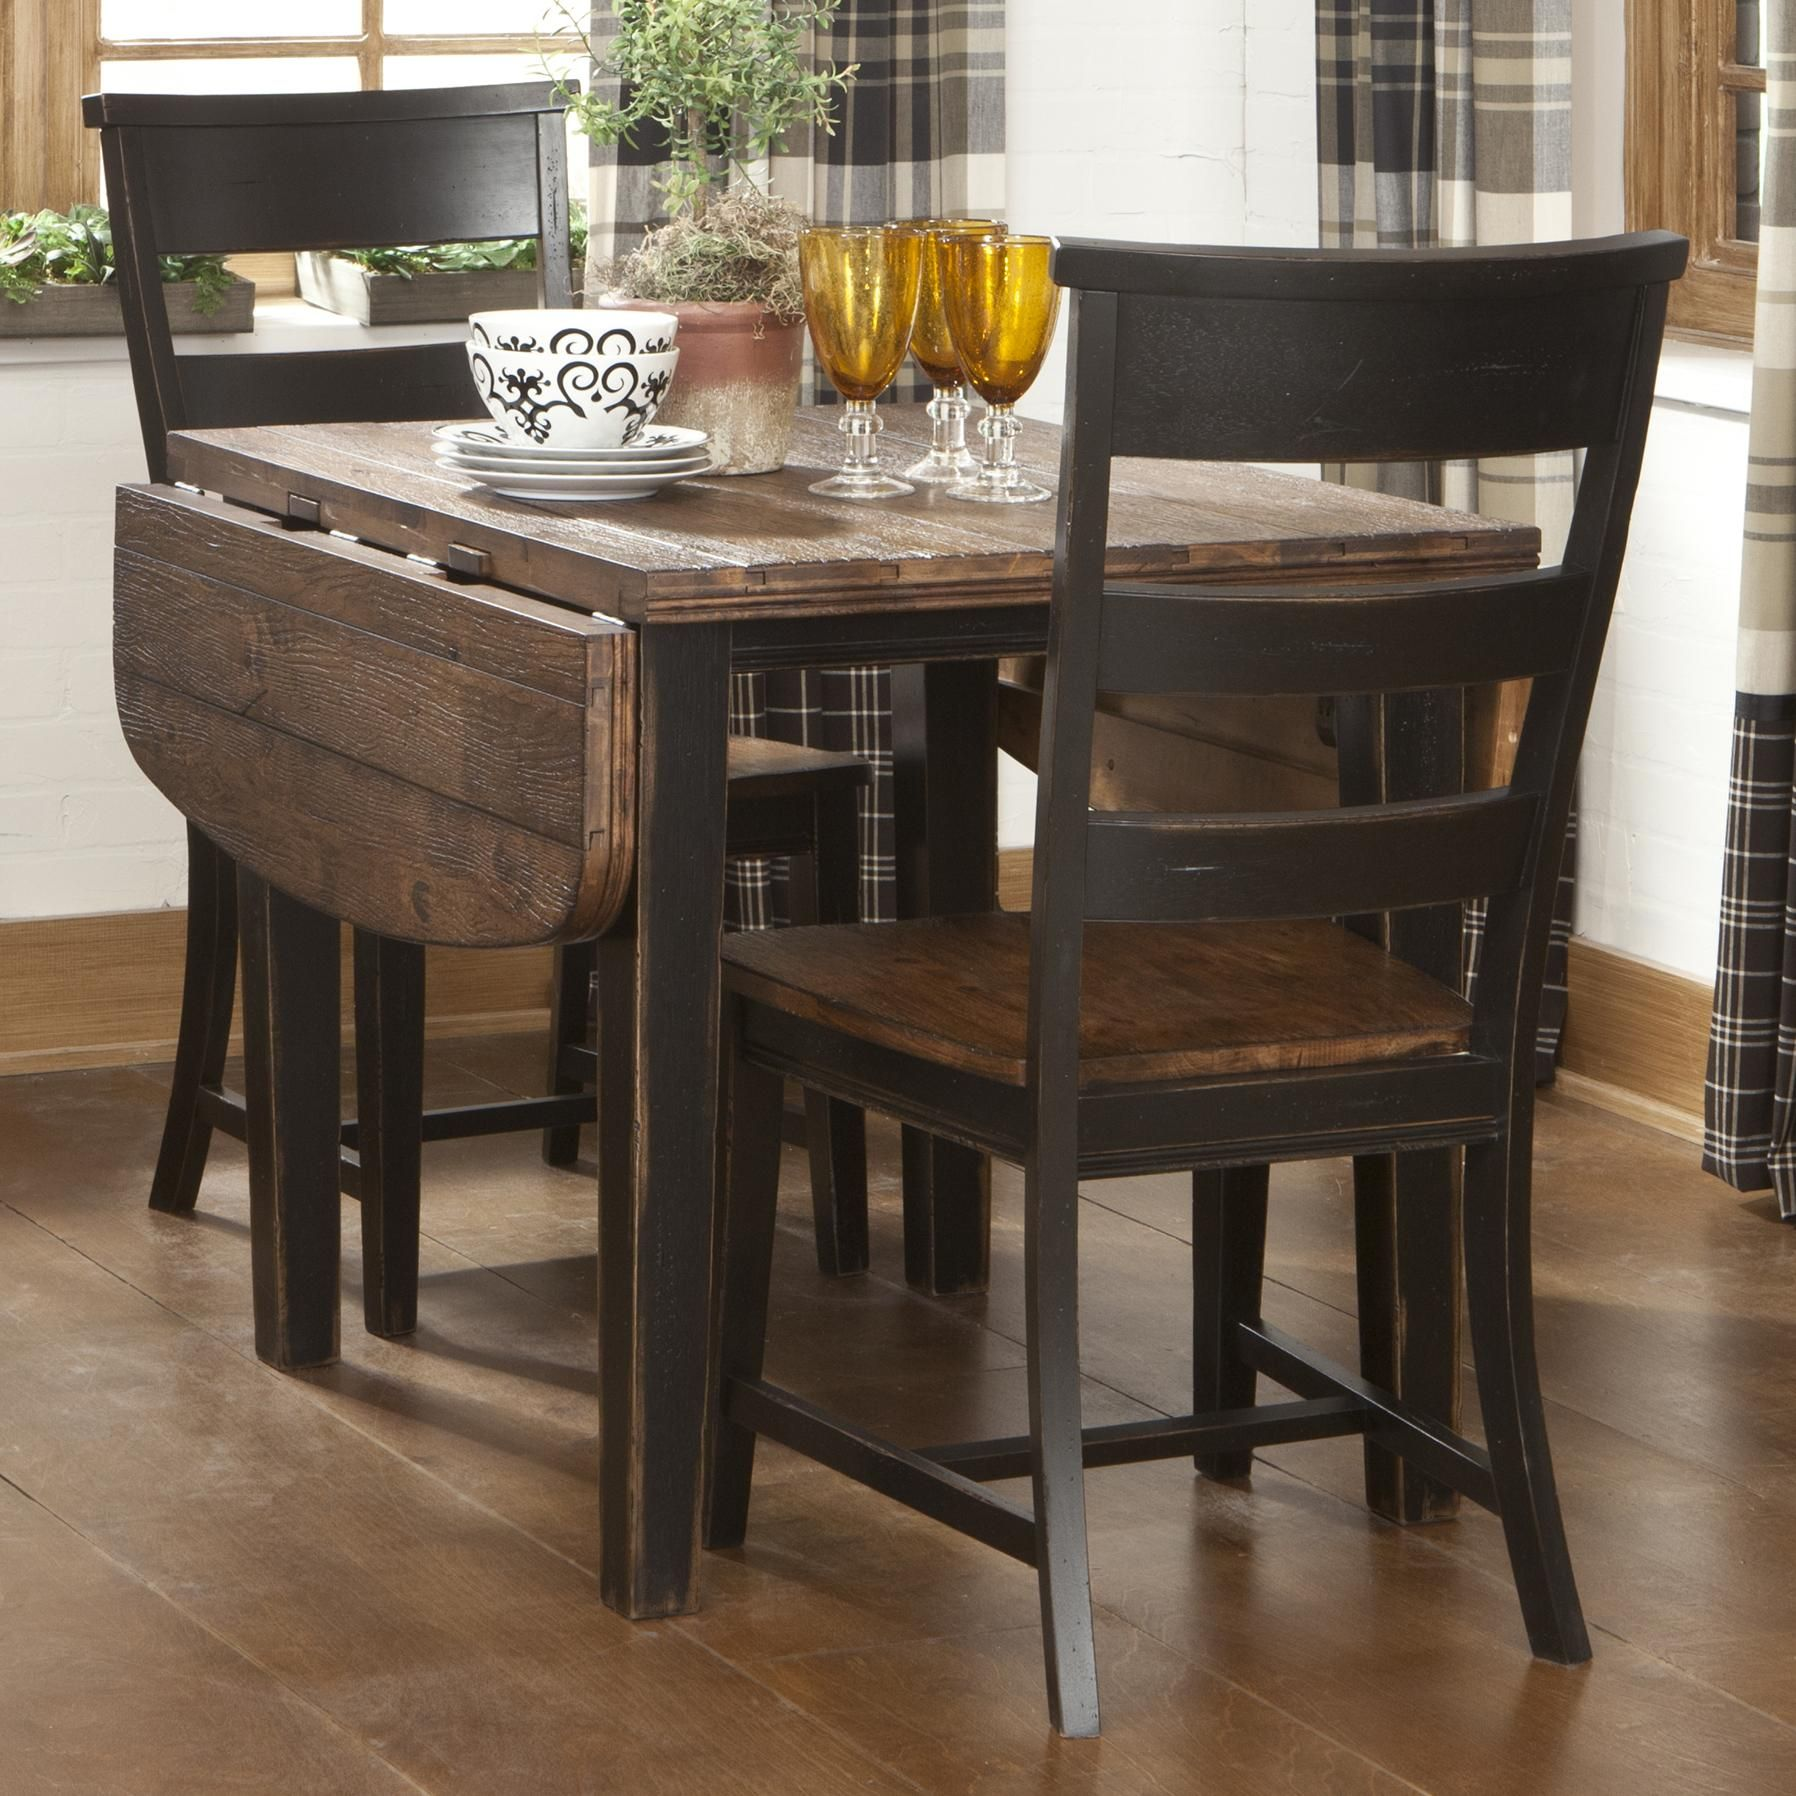 3 Piece Drop Leaf Table Setintercon  For The Home  Pinterest Delectable Small Rectangular Kitchen Table 2018